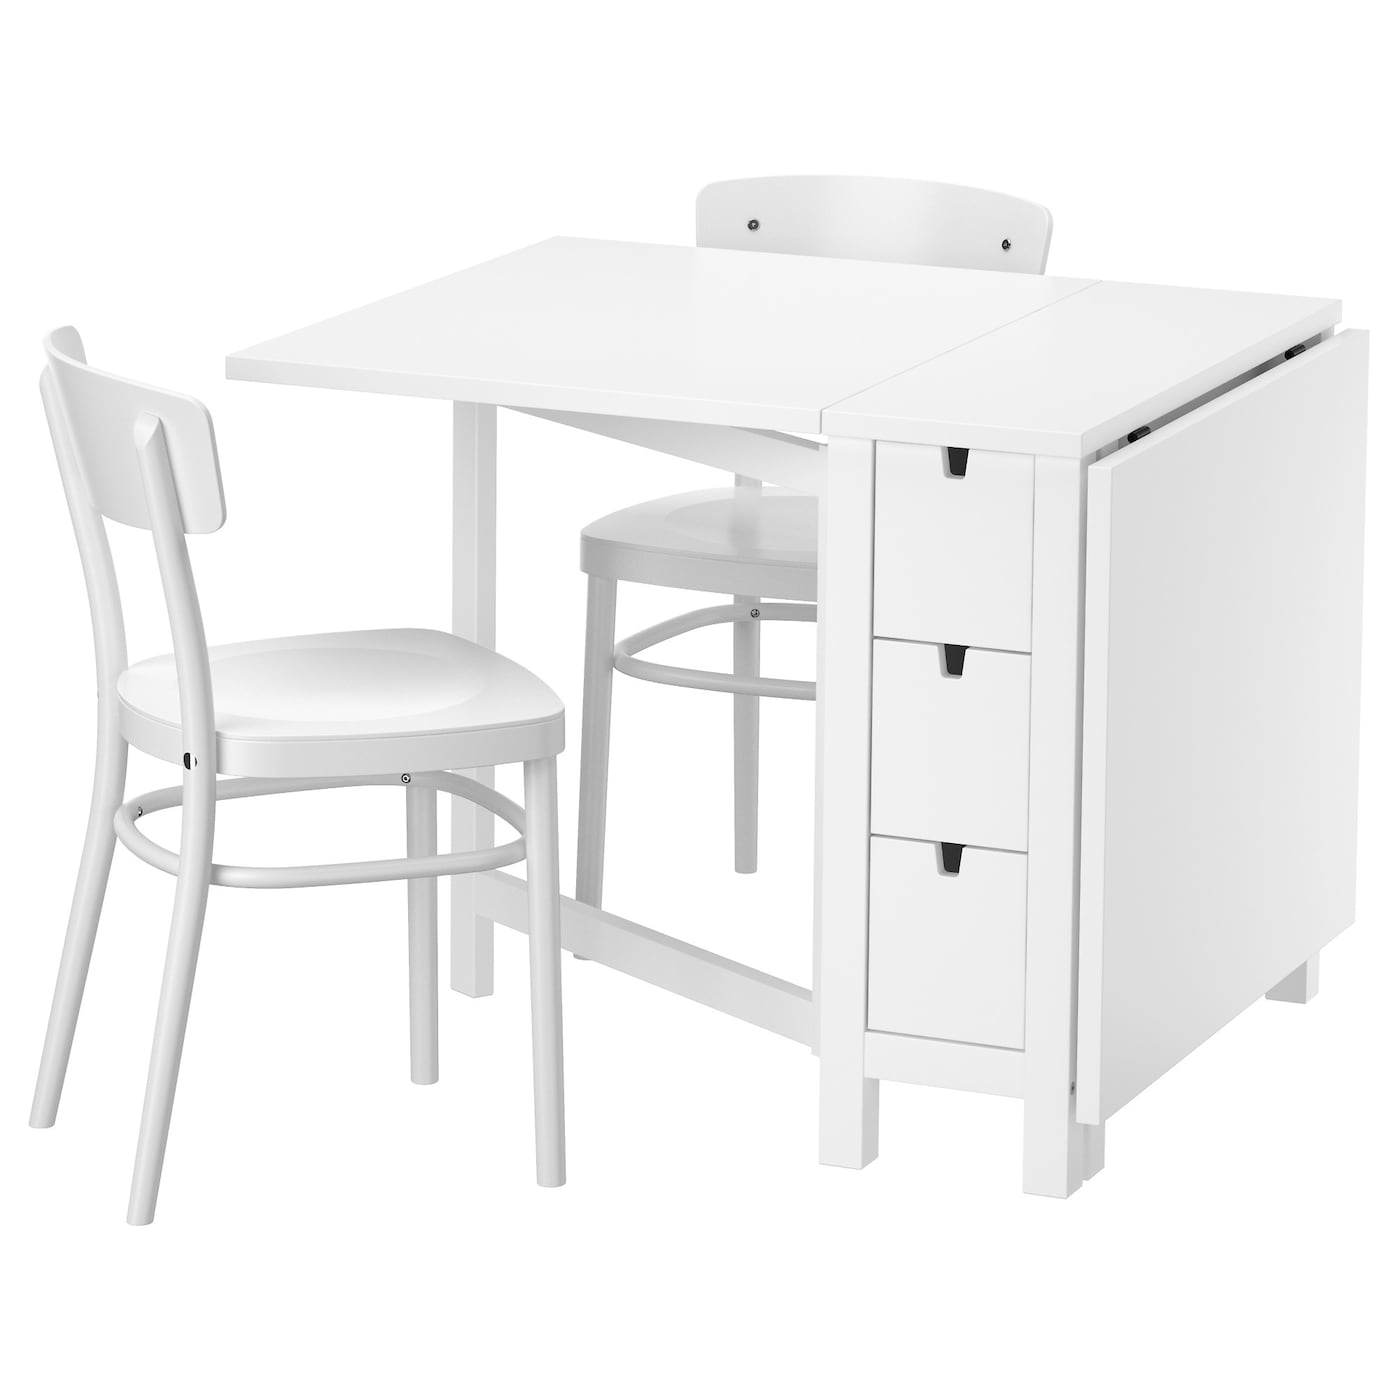 idolf norden table et 2 chaises blanc blanc 89 cm ikea. Black Bedroom Furniture Sets. Home Design Ideas